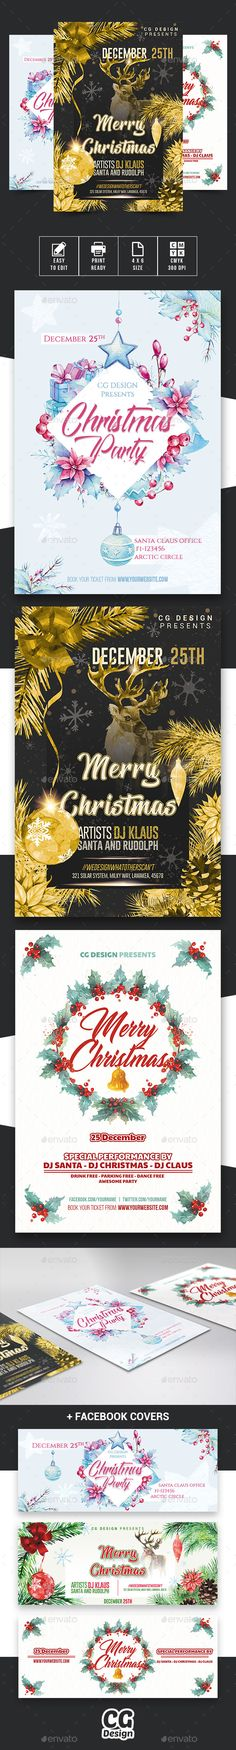 Christmas Flyers Bundle - Events Flyers Christmas Flyers Bundle – This is a bundle with all my Christmas Flyers made in 2017. They are good for all kind of projects. The only limit is your imagination! This bundle contains 3 Christmas Flyers: